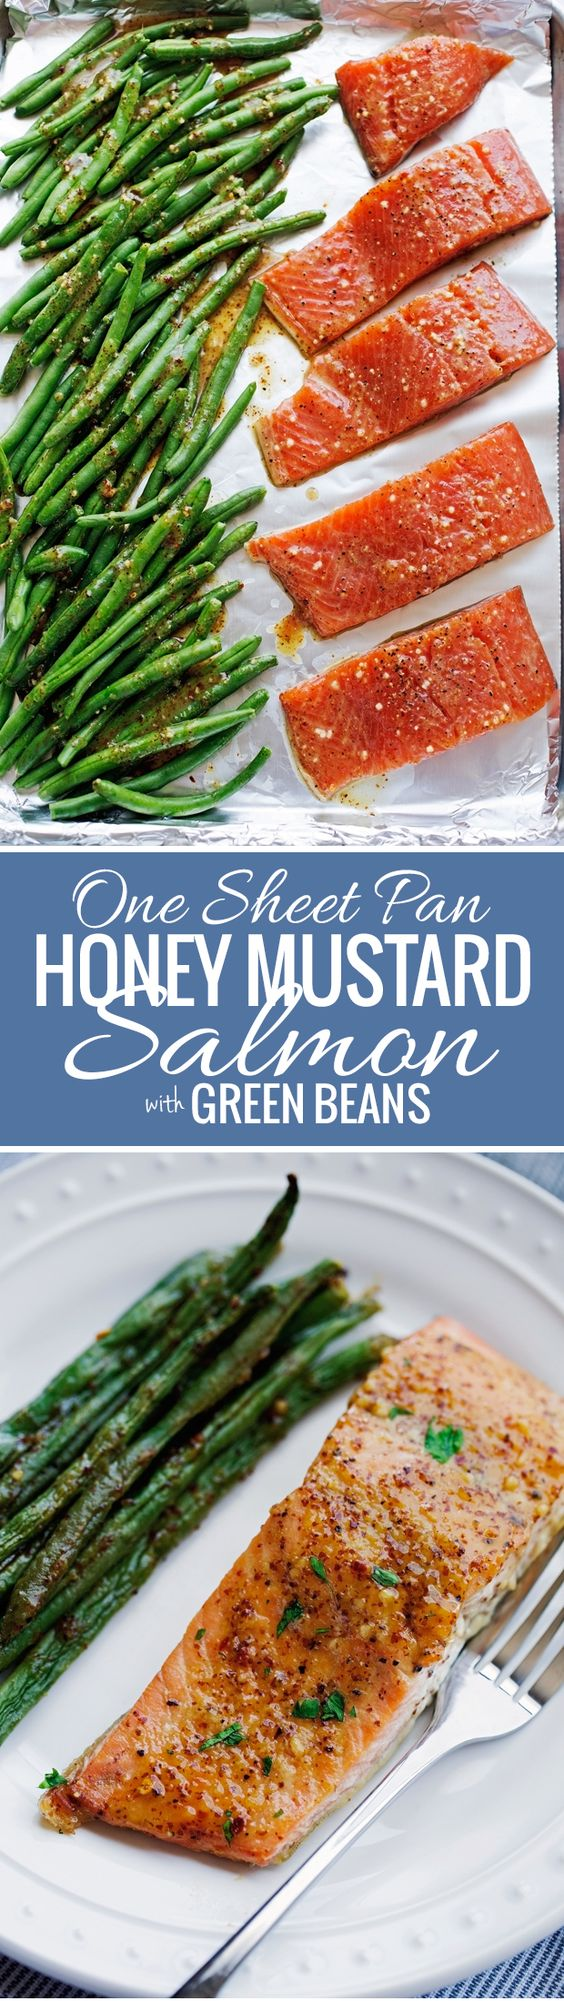 One Sheet Pan Honey Mustard Salmon with Green Beans Recipe via Little Spice Jar - An easy weeknight dinner that's all baked in one pan!